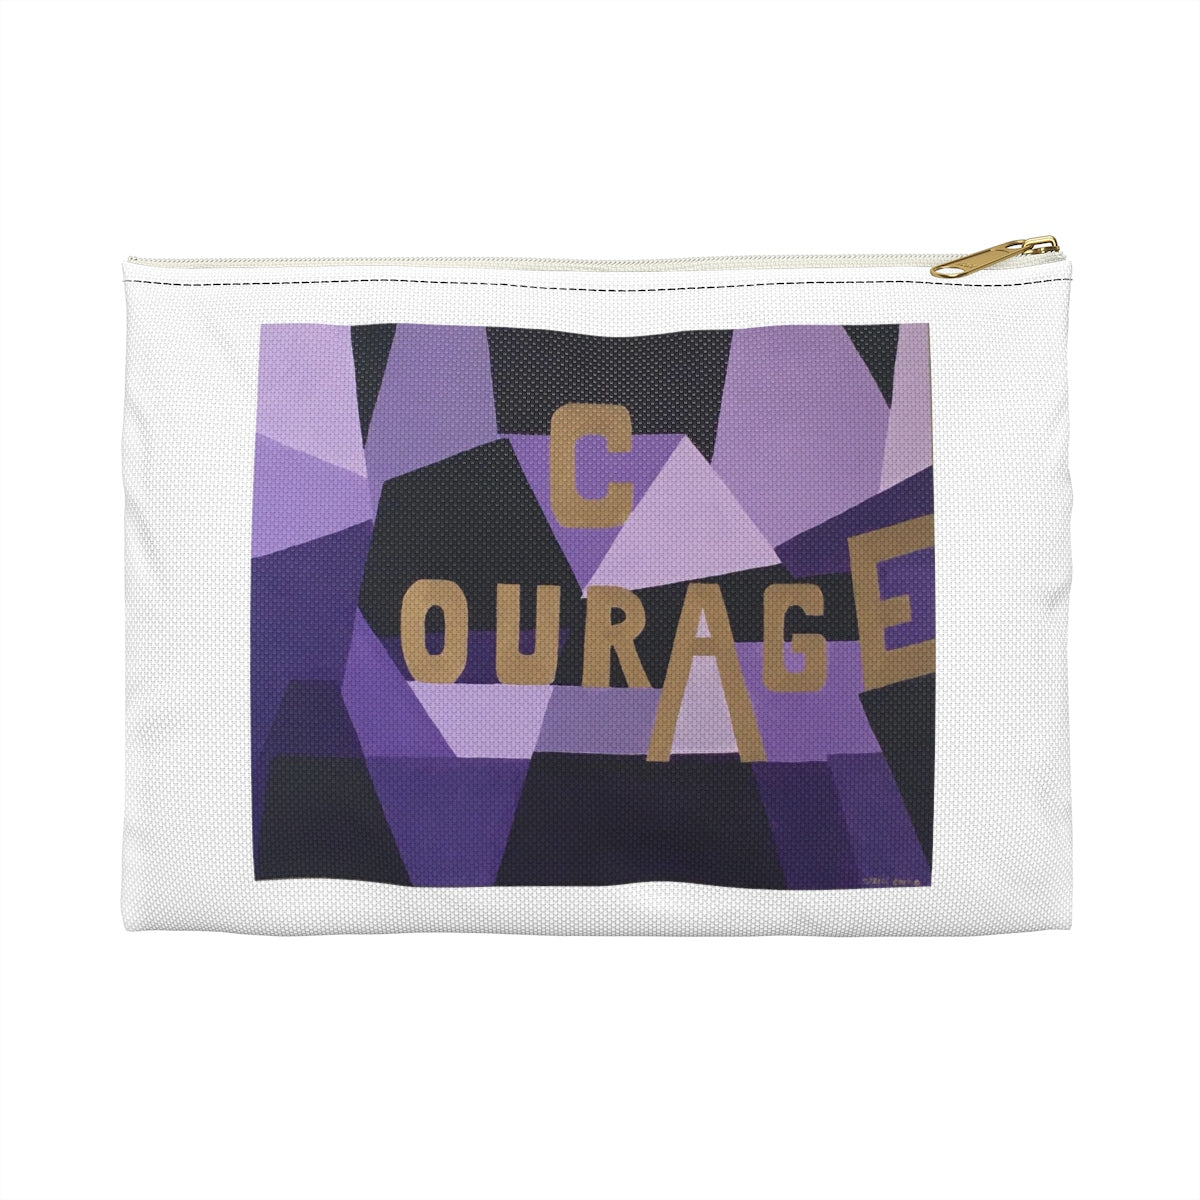 Courage Accessory Pouch - Tara Price Art